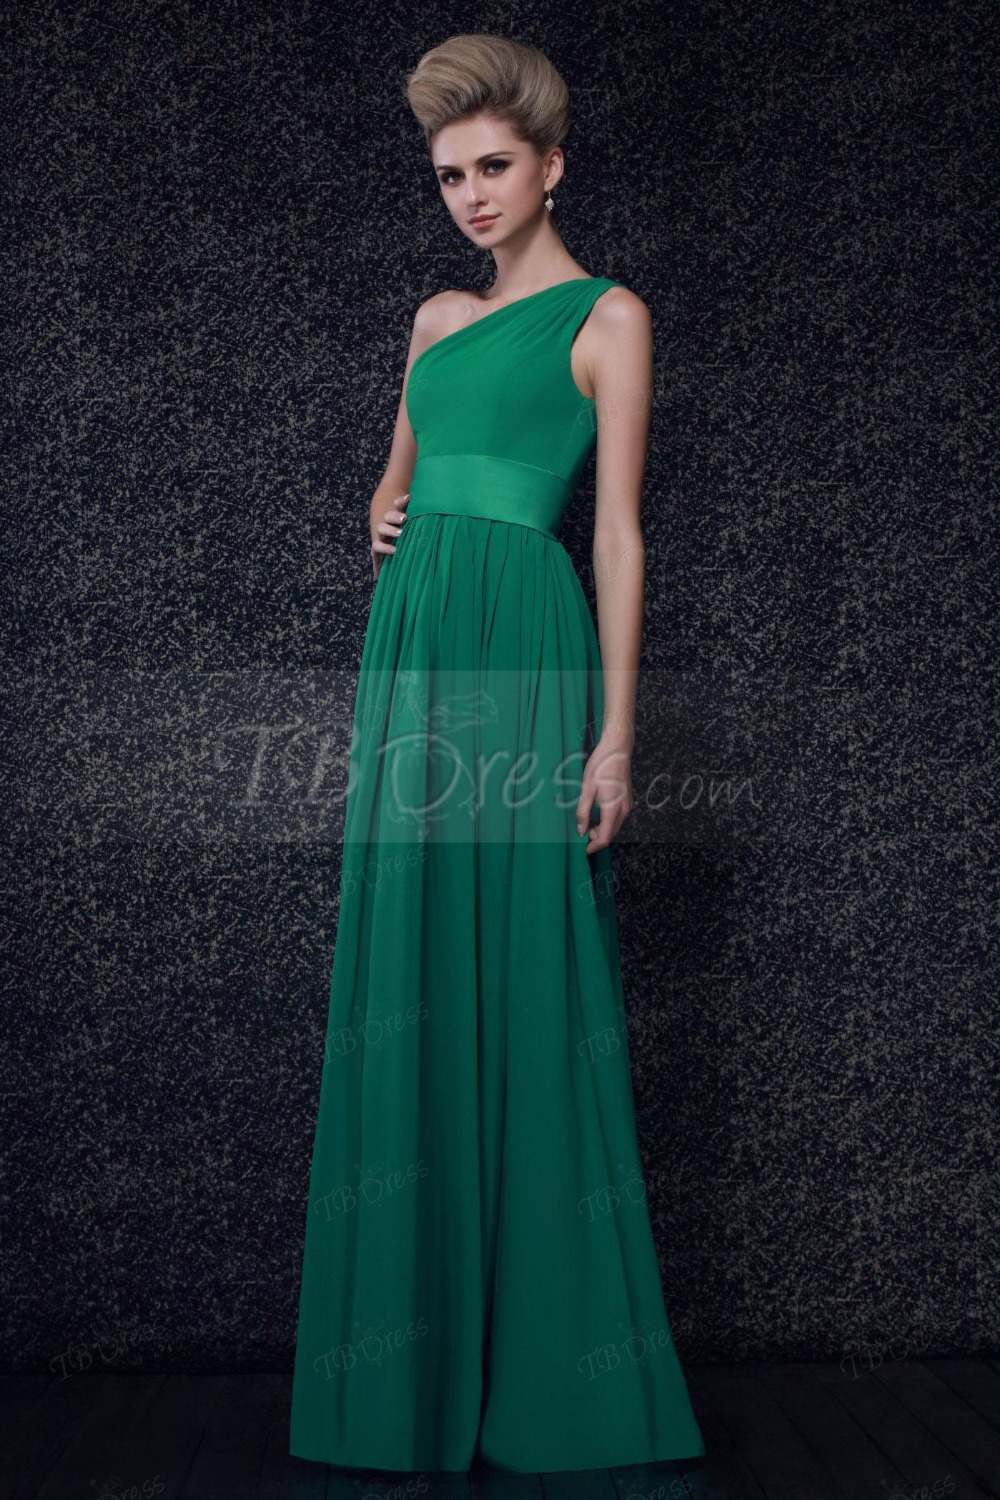 2015 sweetheart pleats a line one shoulder floor length chiffon 2015 sweetheart pleats a line one shoulder floor length chiffon emerald green bridesmaid dress long wedding party dress zh856 in bridesmaid dresses from ombrellifo Gallery